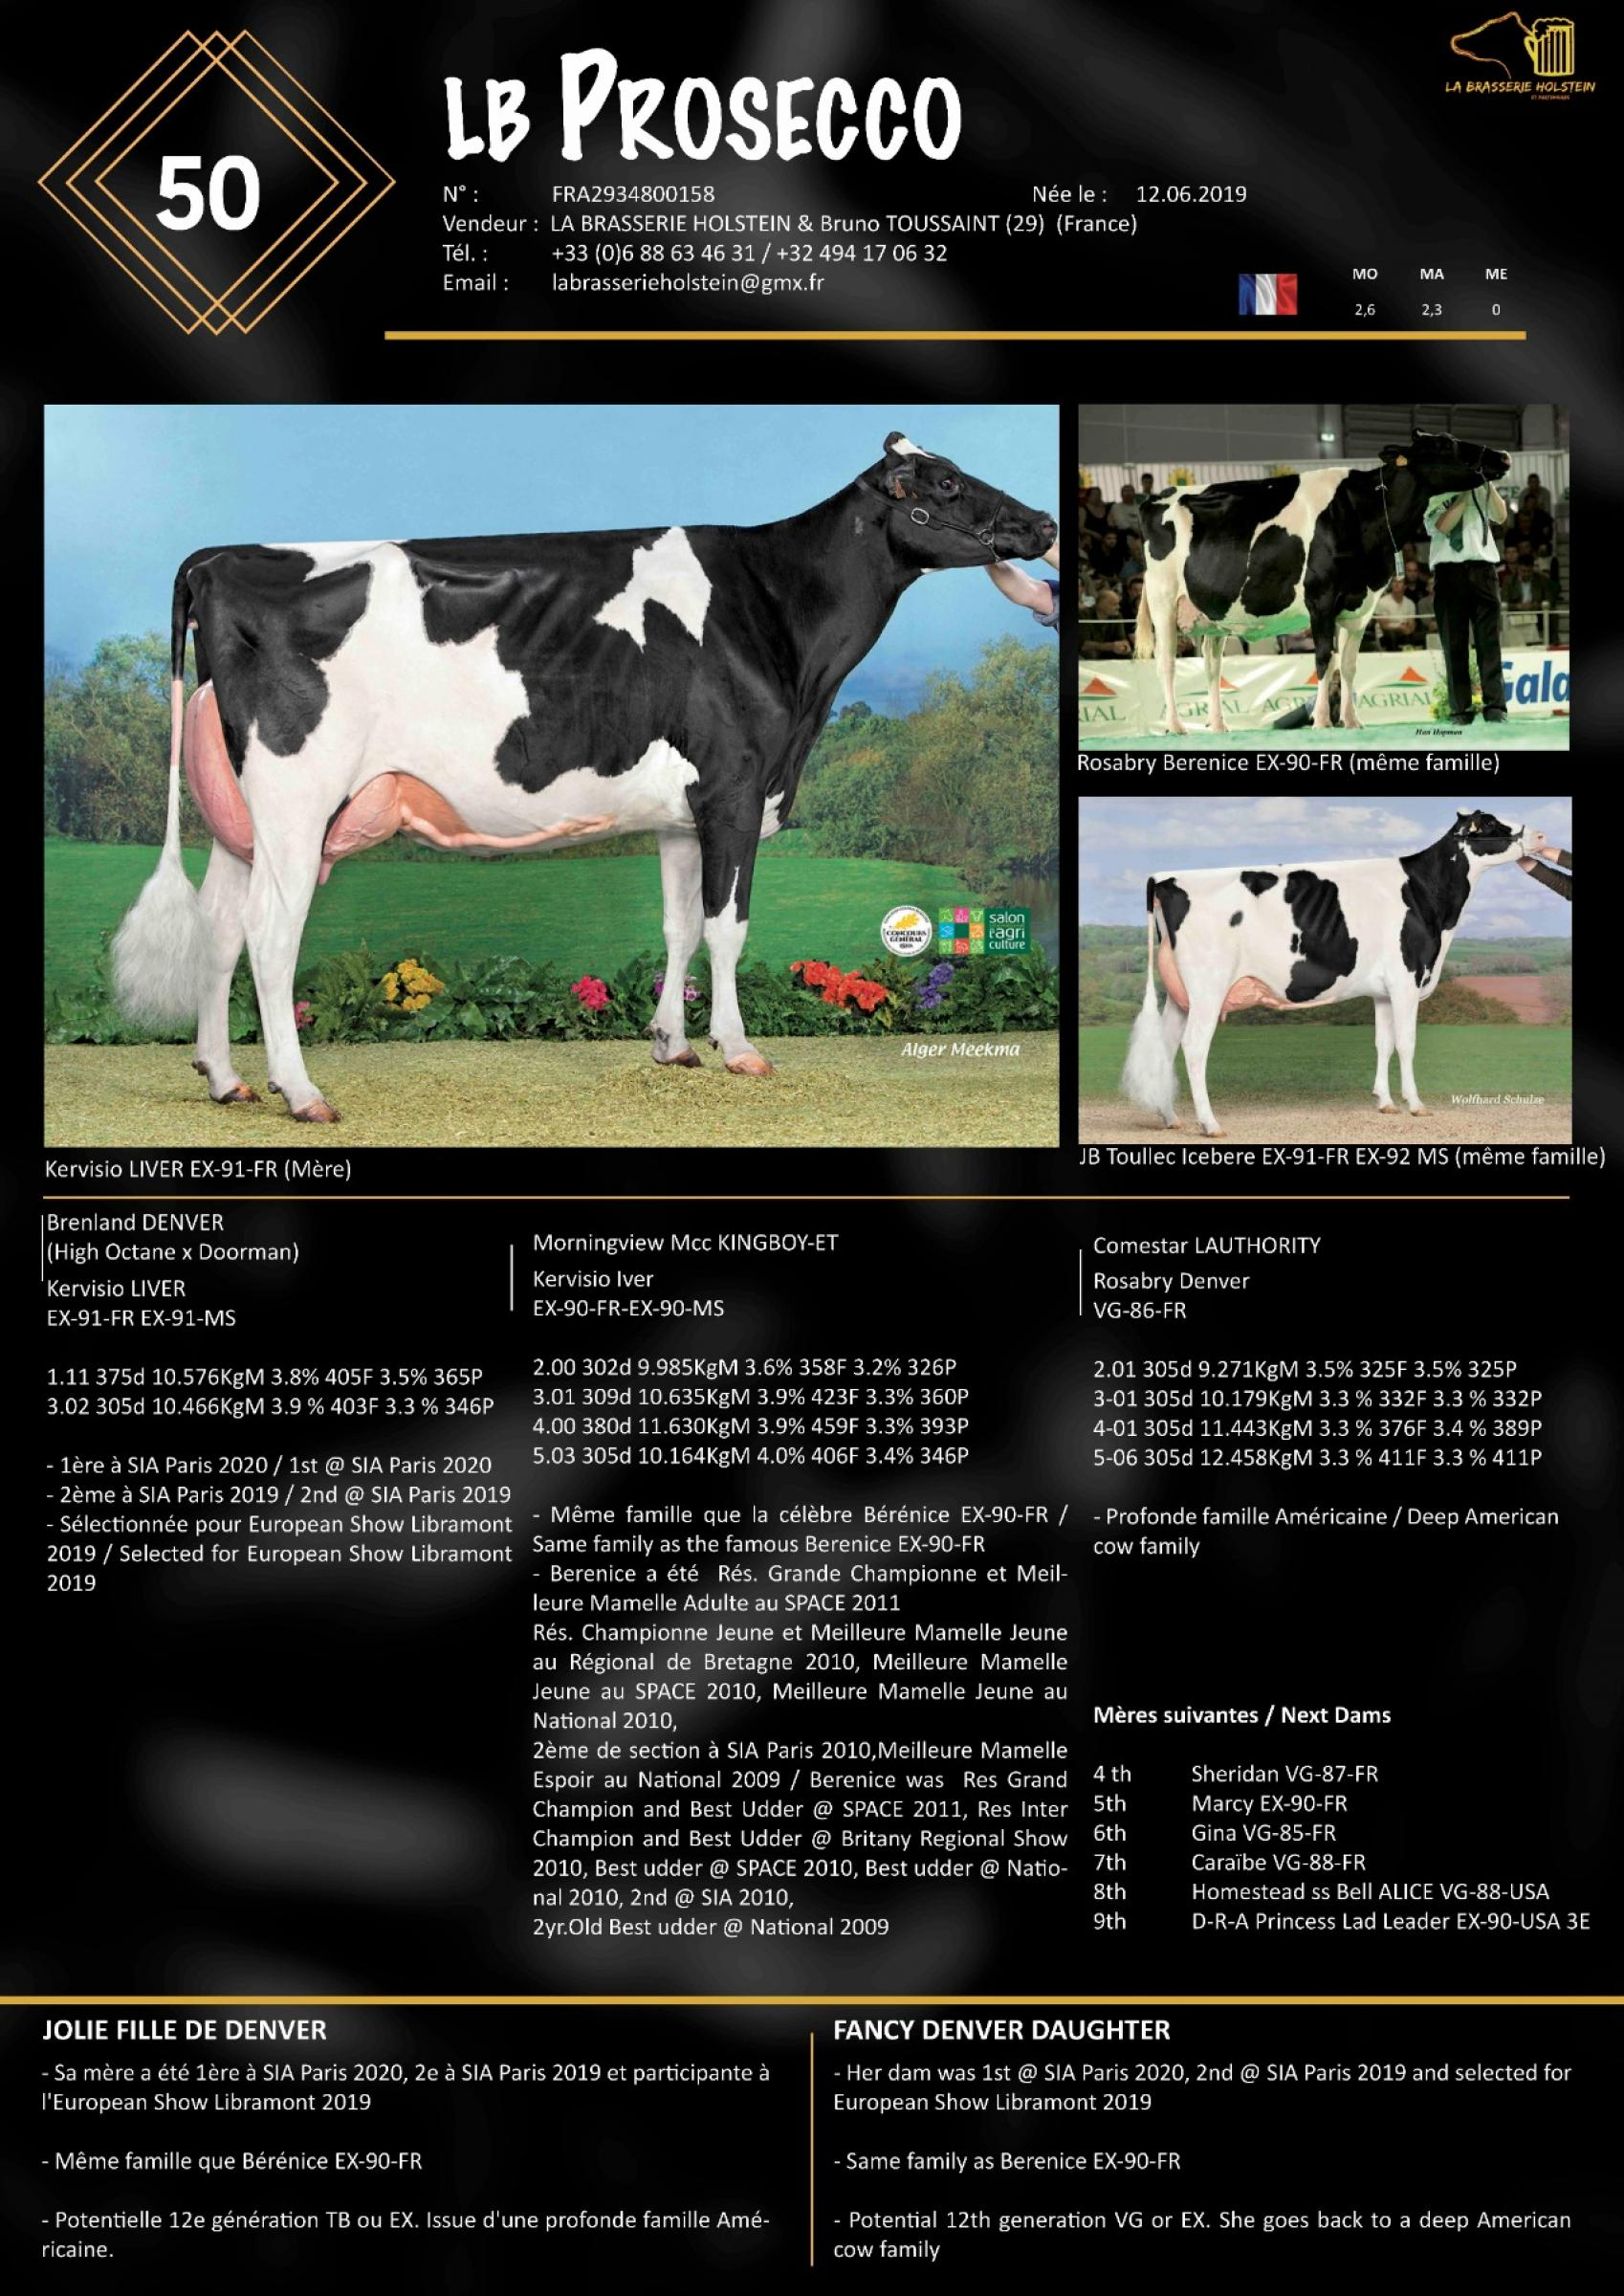 Datasheet for Lot 50. LB Prosecco (1st  Choice With LB Passoa)